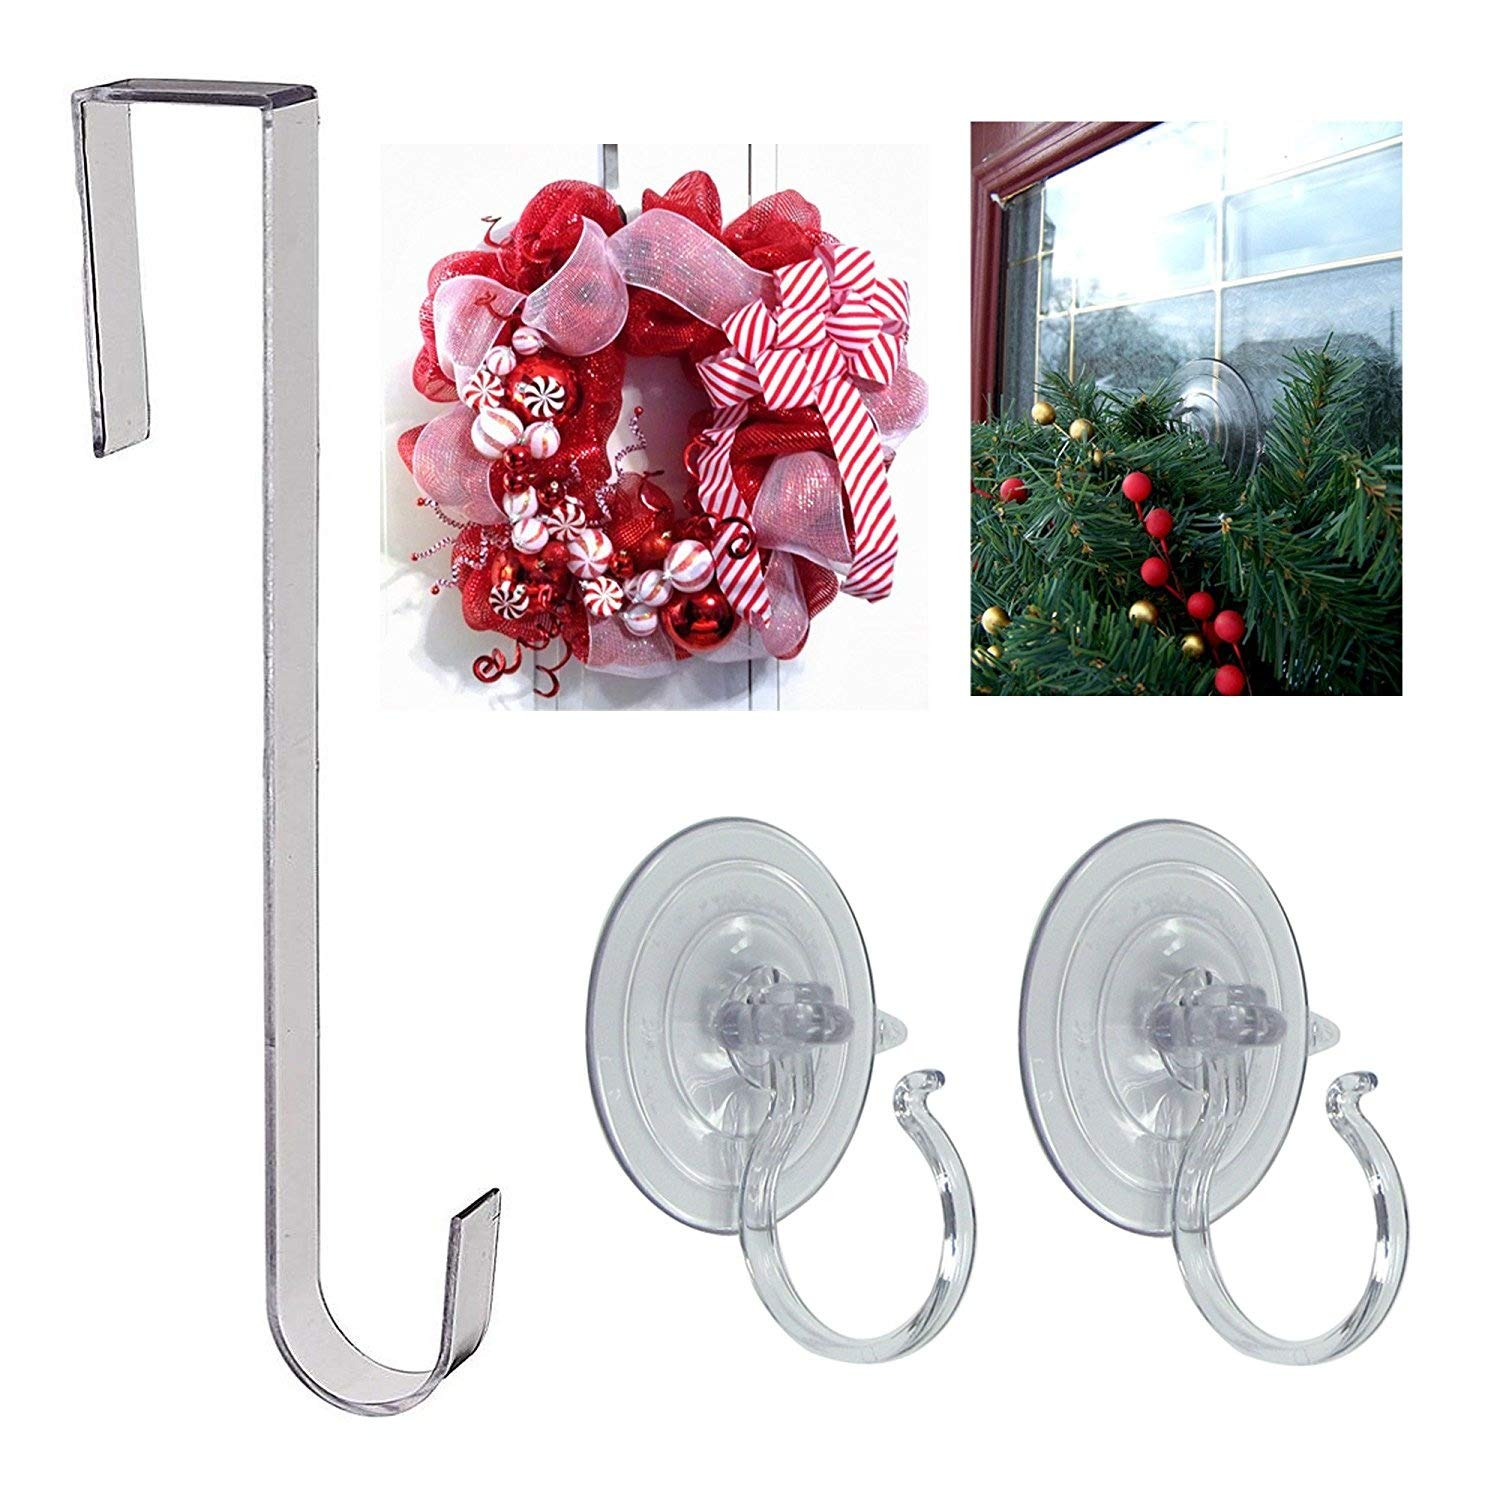 Door Wreath Hanger 12 Inch-Clear Plastic and 2 Giant Suction Cup with Loop Wreath & Swag Hooks - Window & Door Christmas Wreaths Hangers Bundle Collectibles and Video